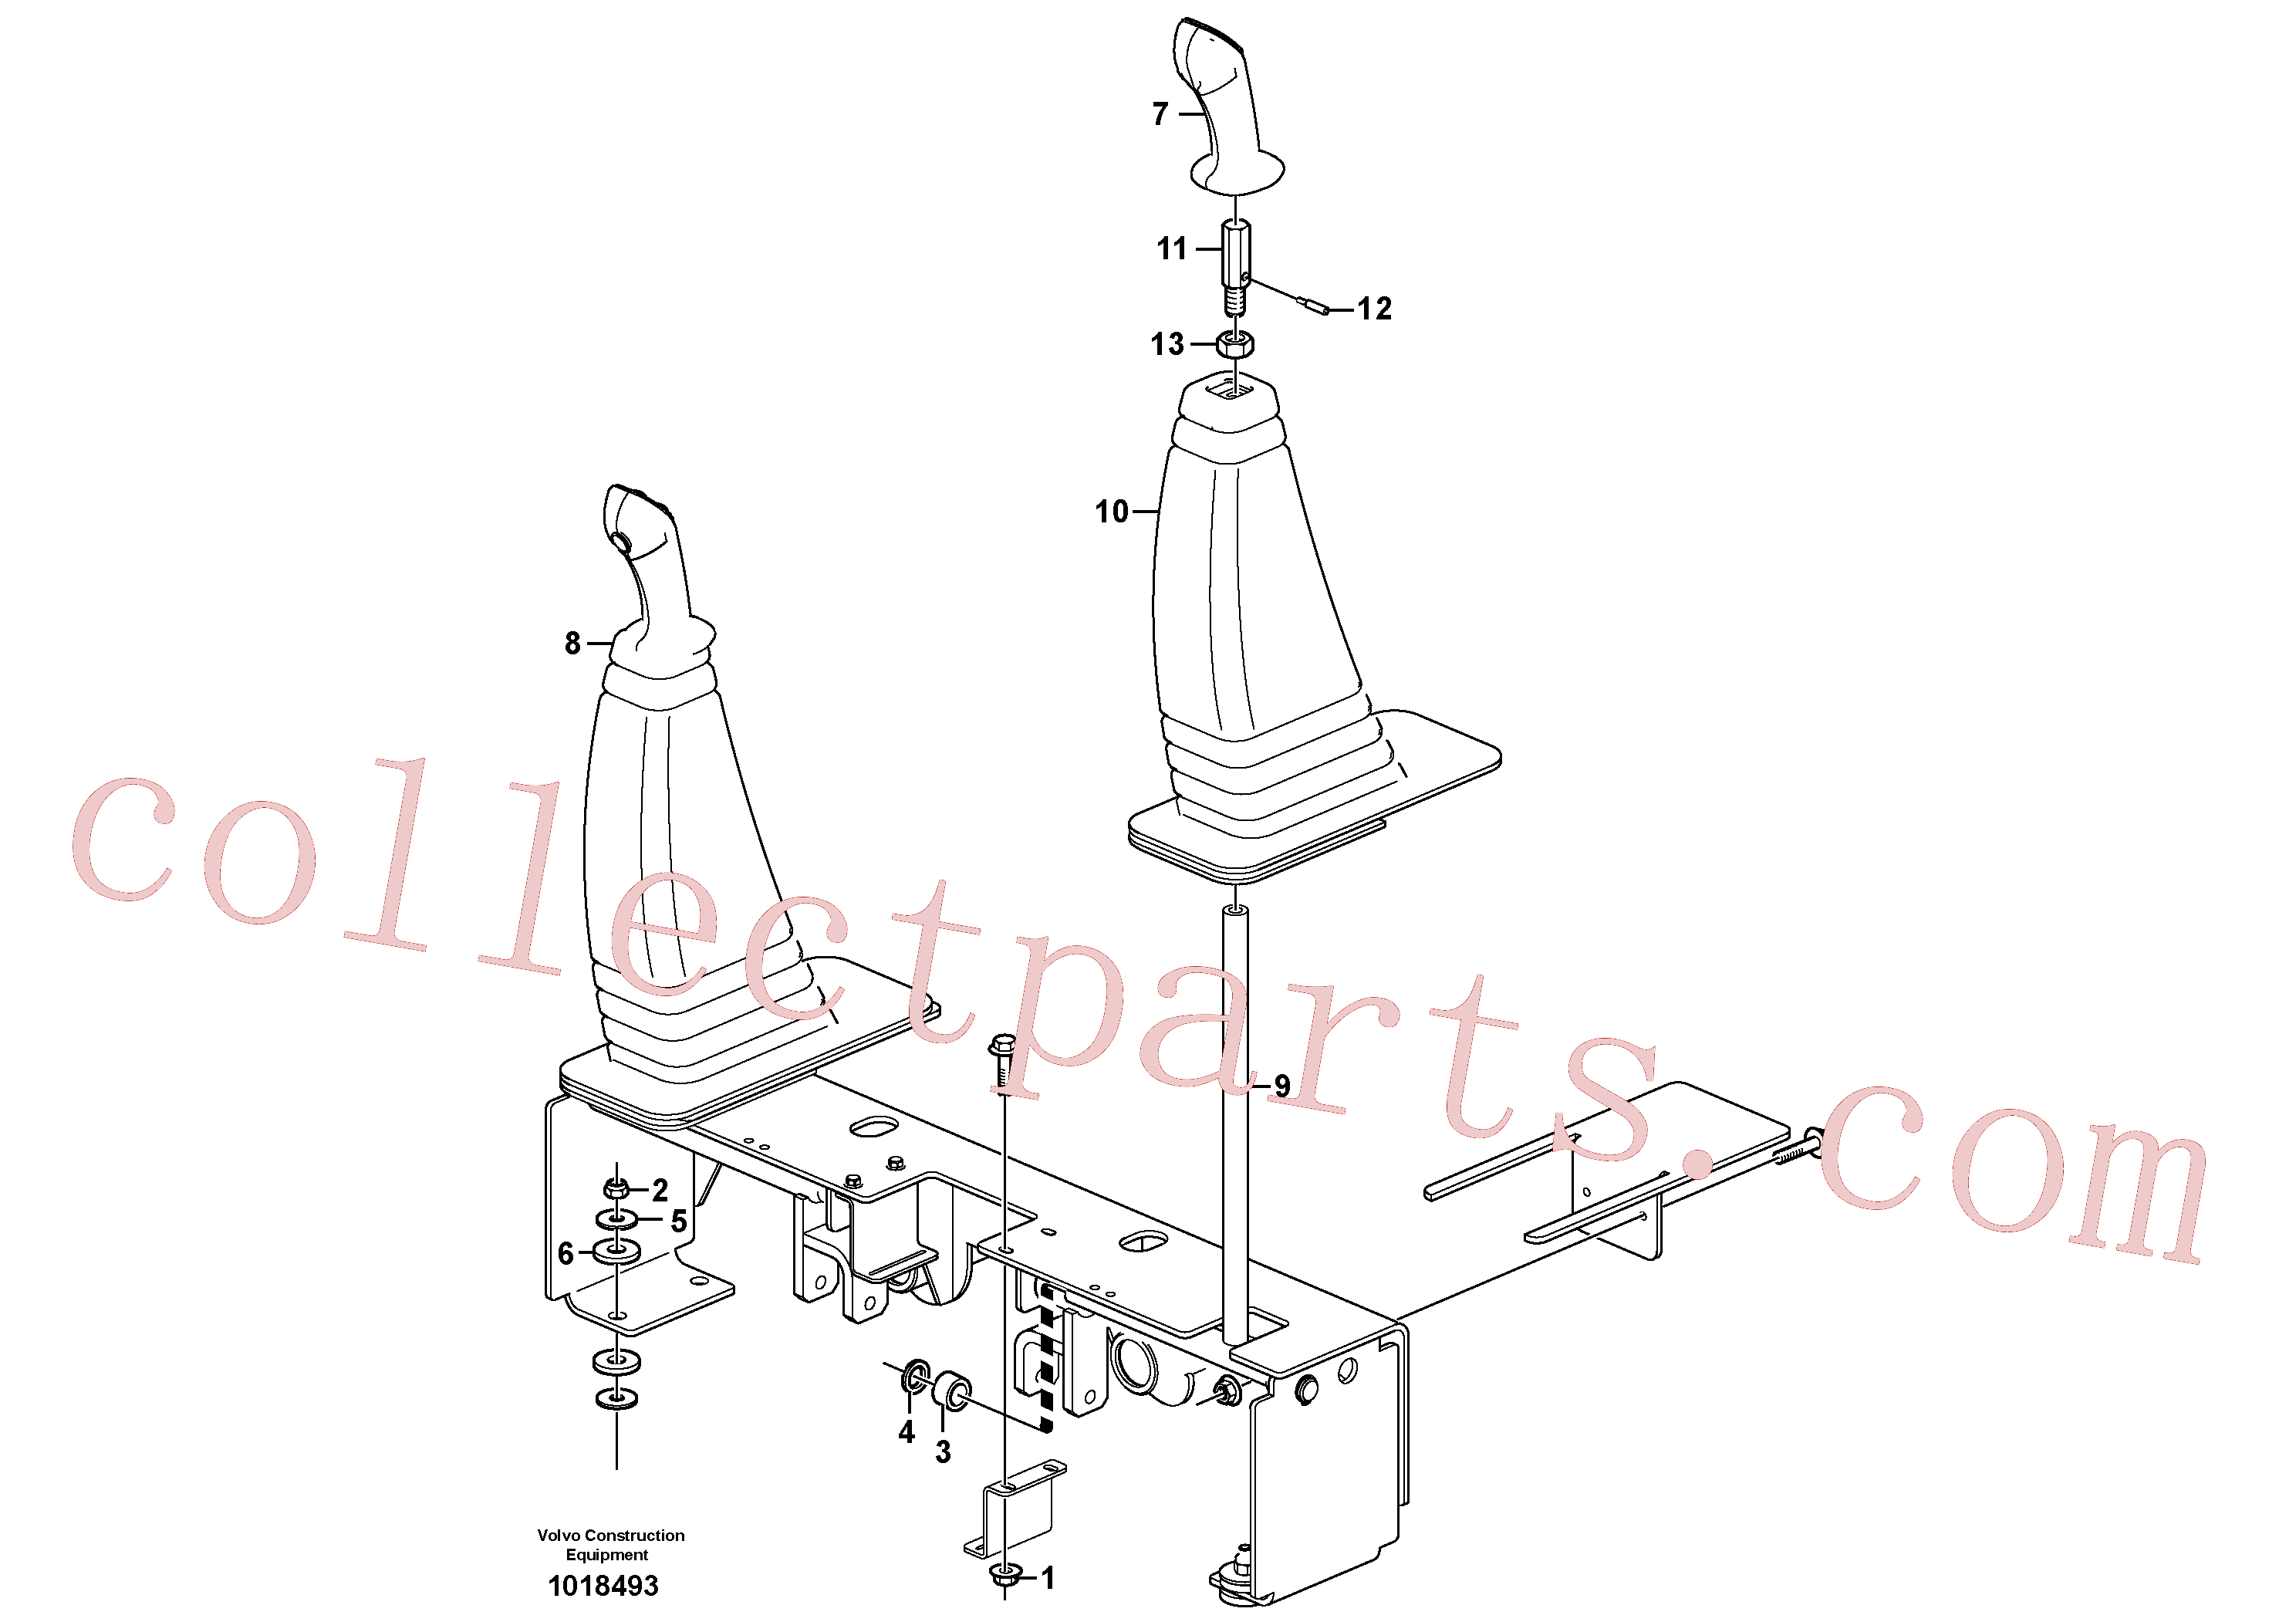 VOE11851823 for Volvo Optional hand controls(1018493 assembly)